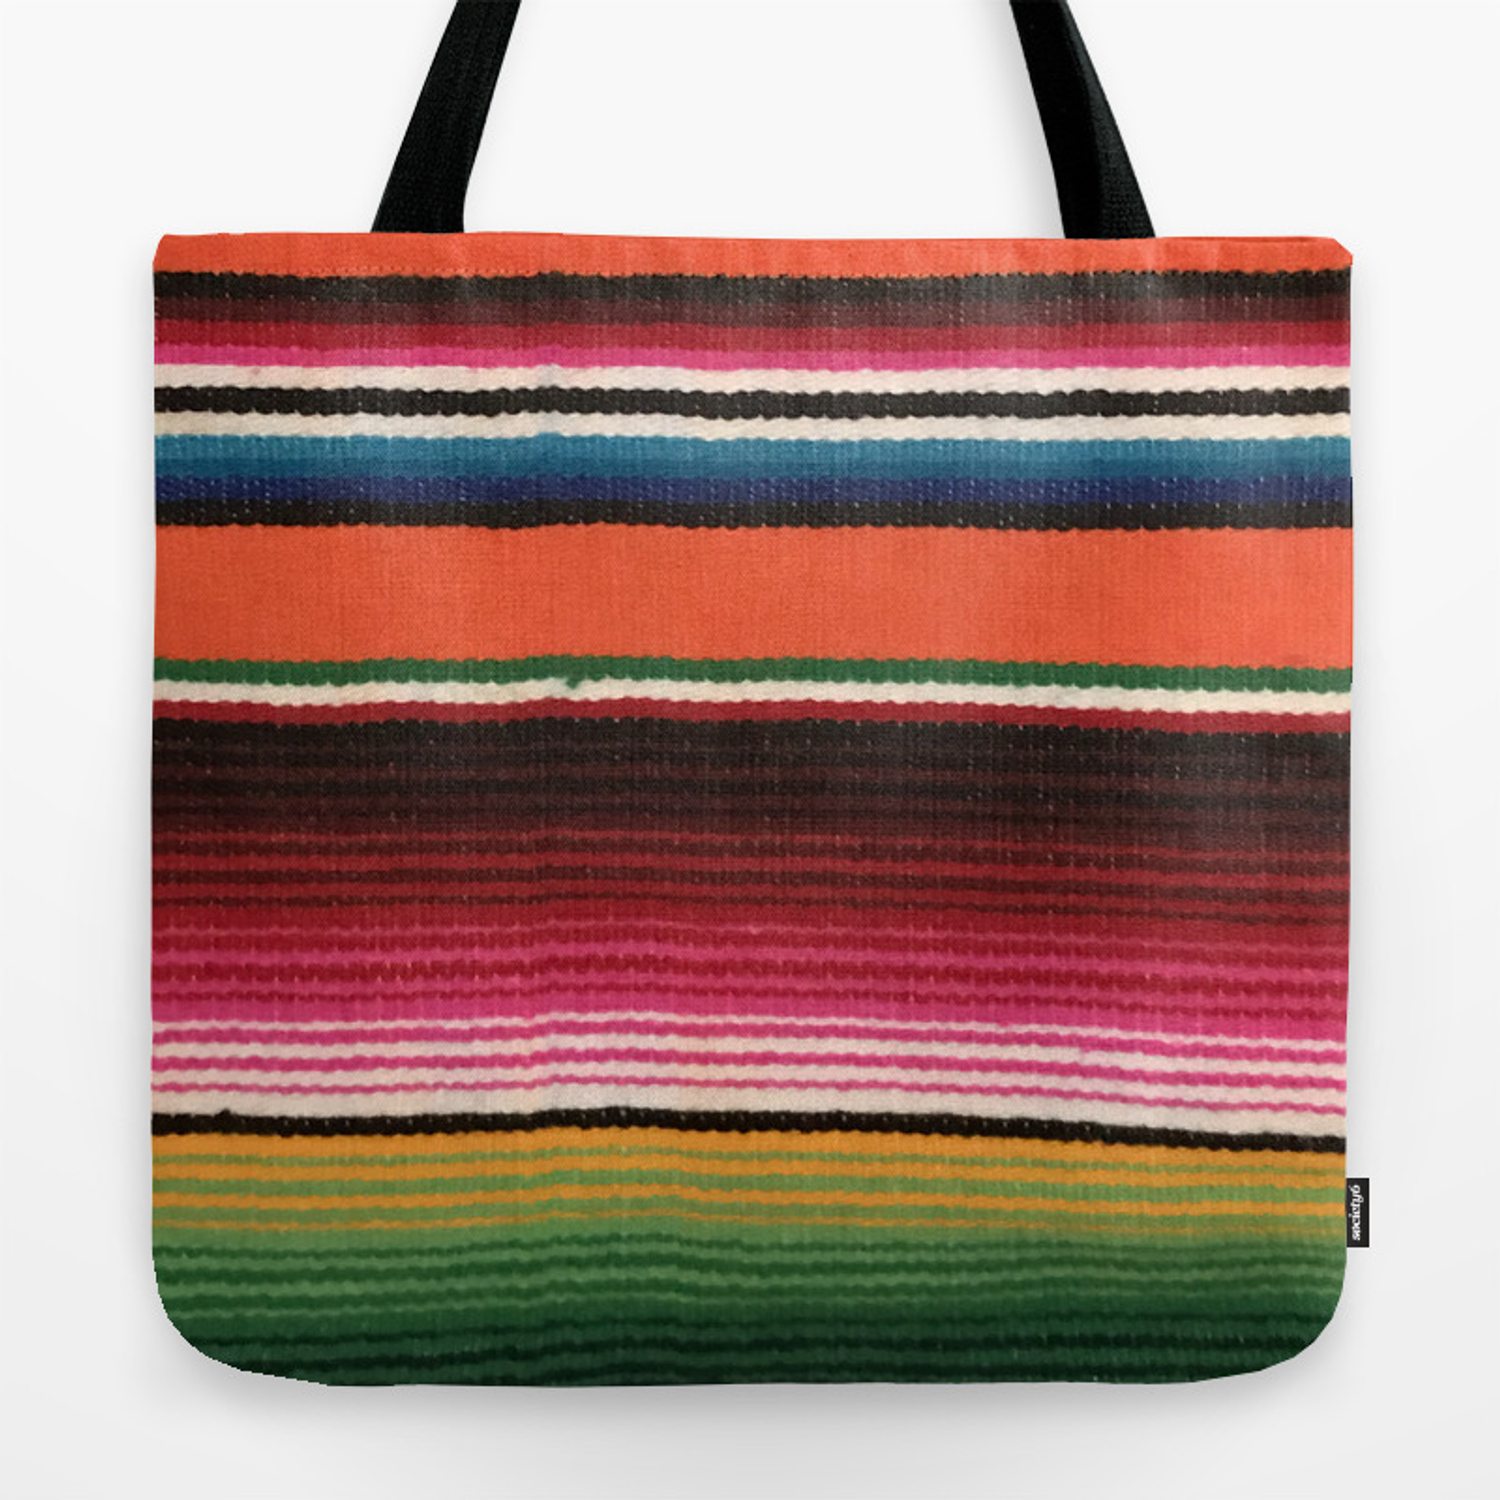 Beauiful Mexican Serape Chest/Sling/Bag/Crossbody/Backpack/Shoulder/Casual/Daypack/Rucksack/for/Men/Women/Outdoor/Cycling/Hiking/Travel